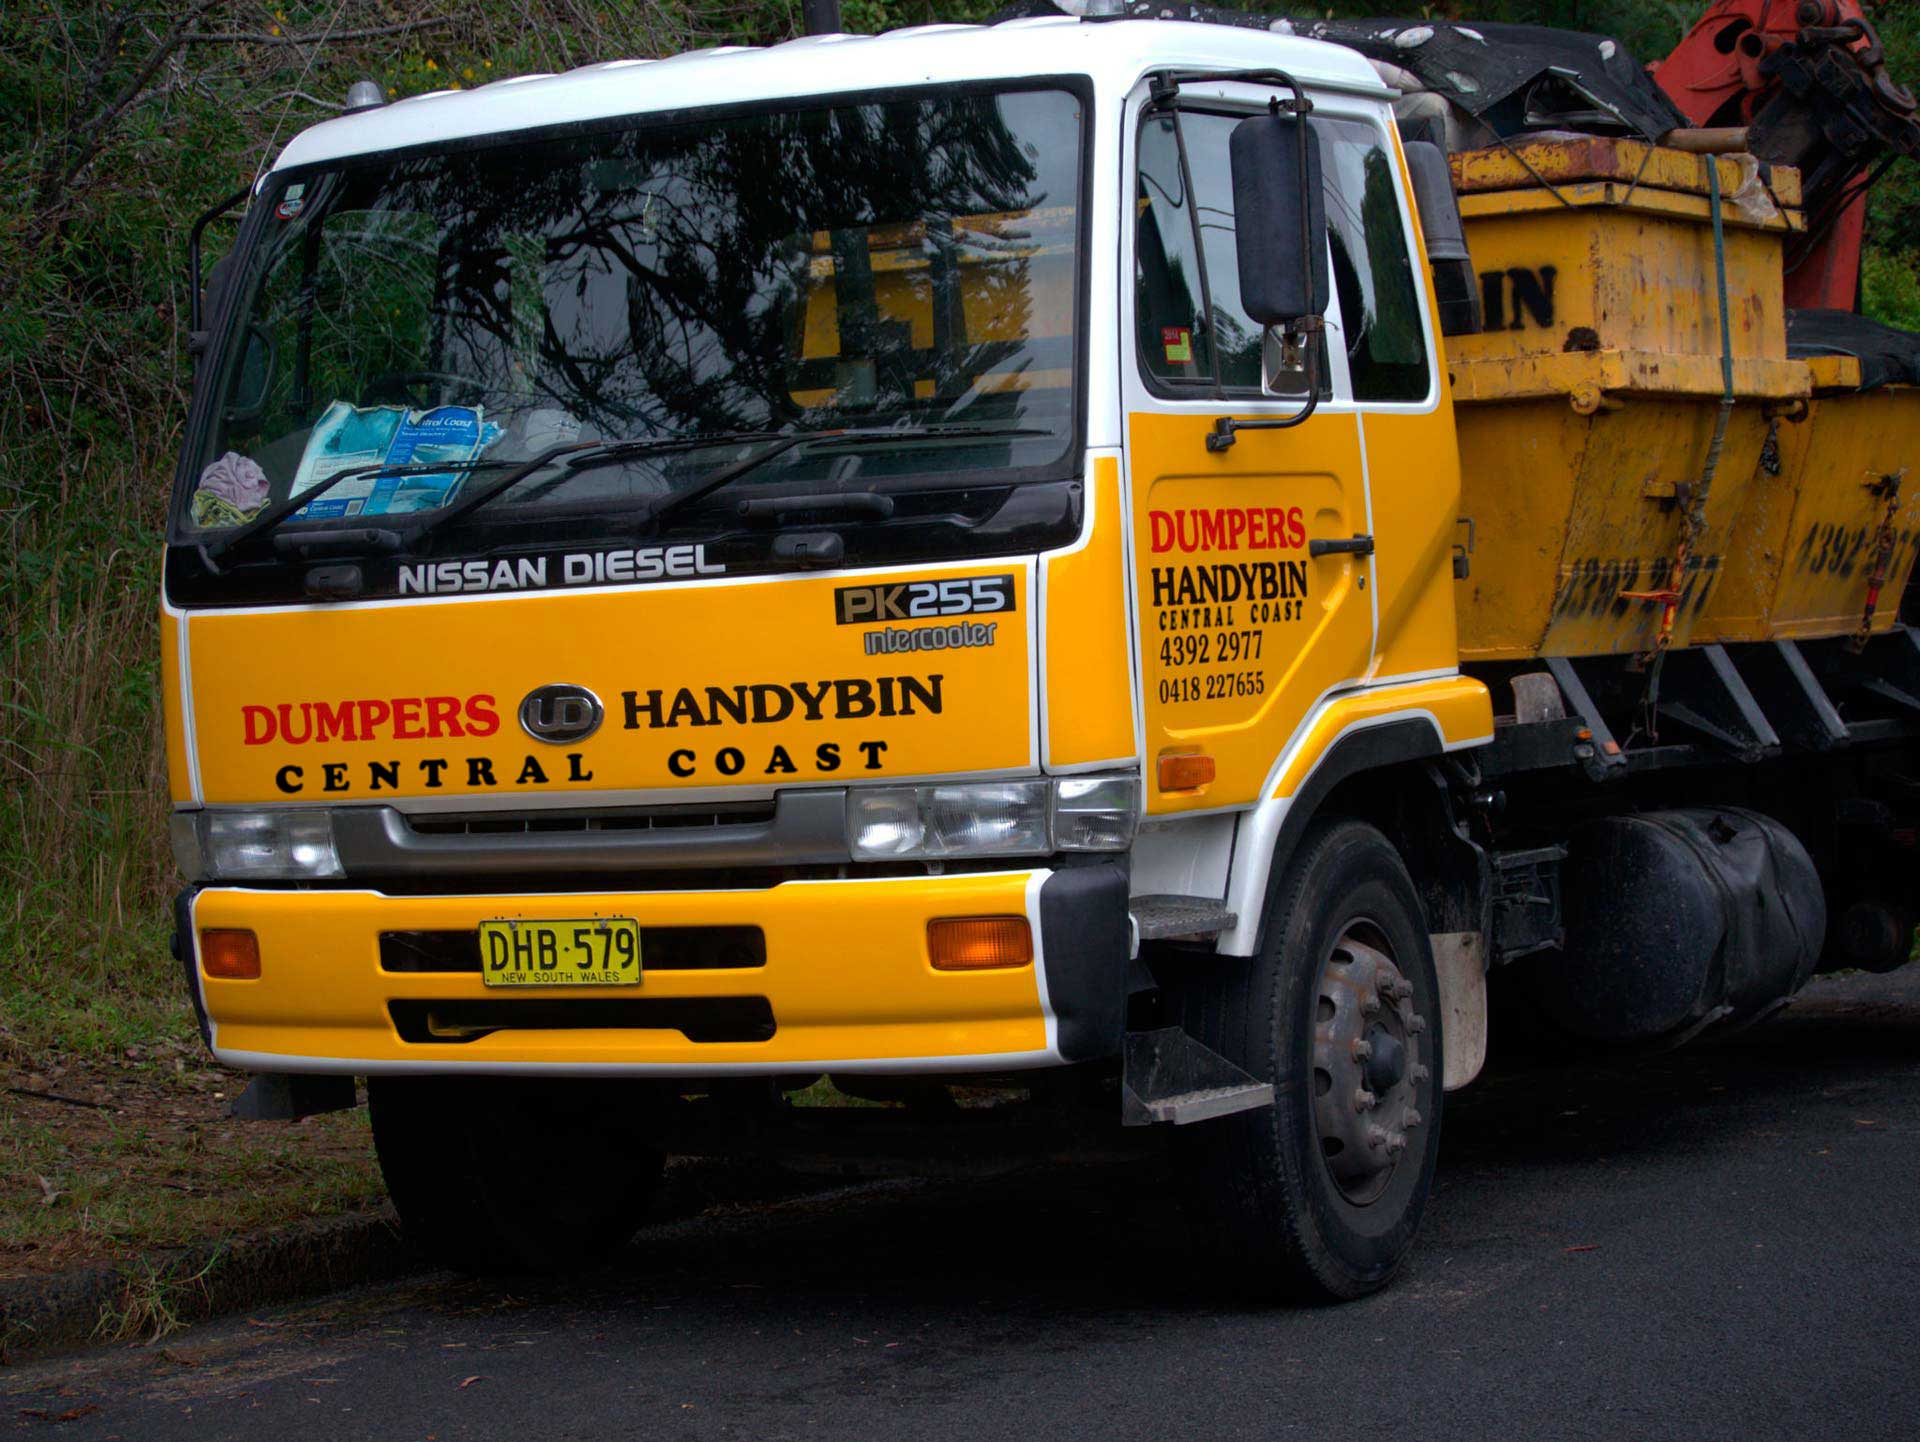 Dumpers Handybin Central Coast